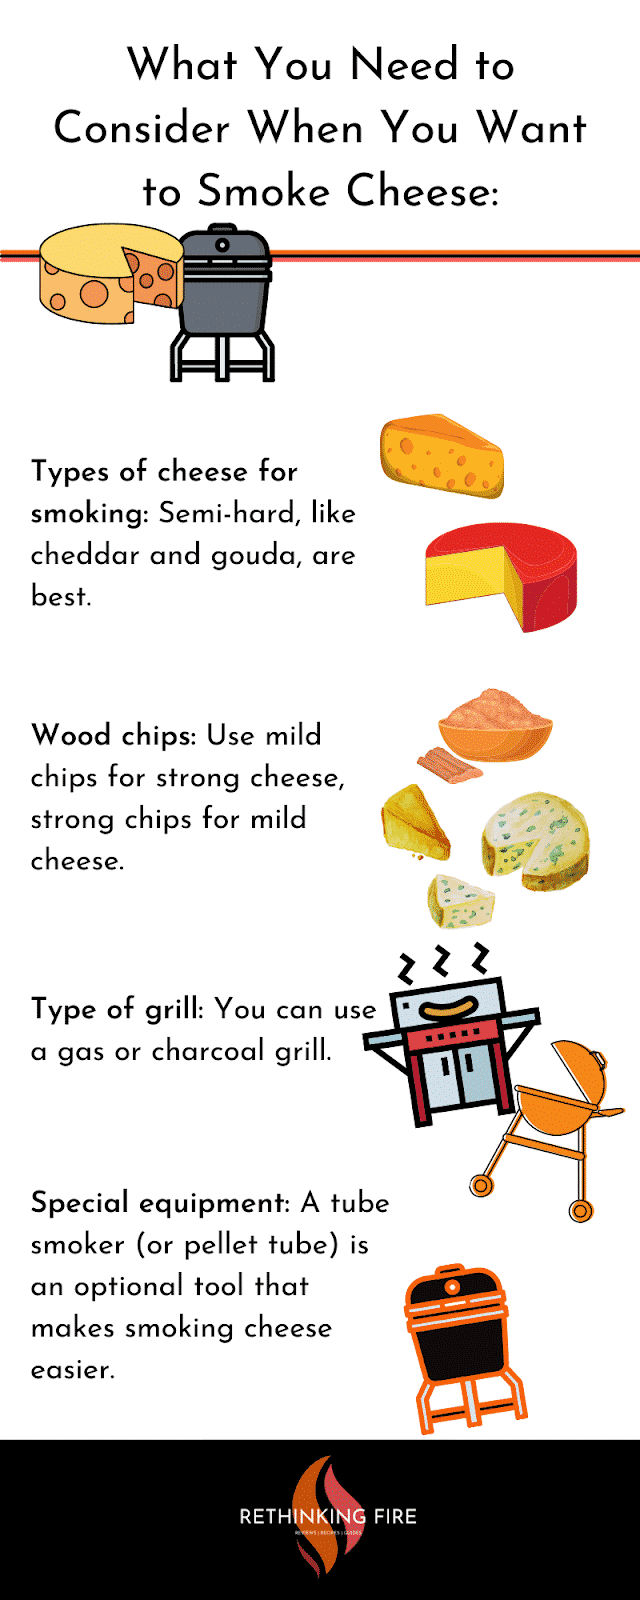 How To Smoke Cheese infographic